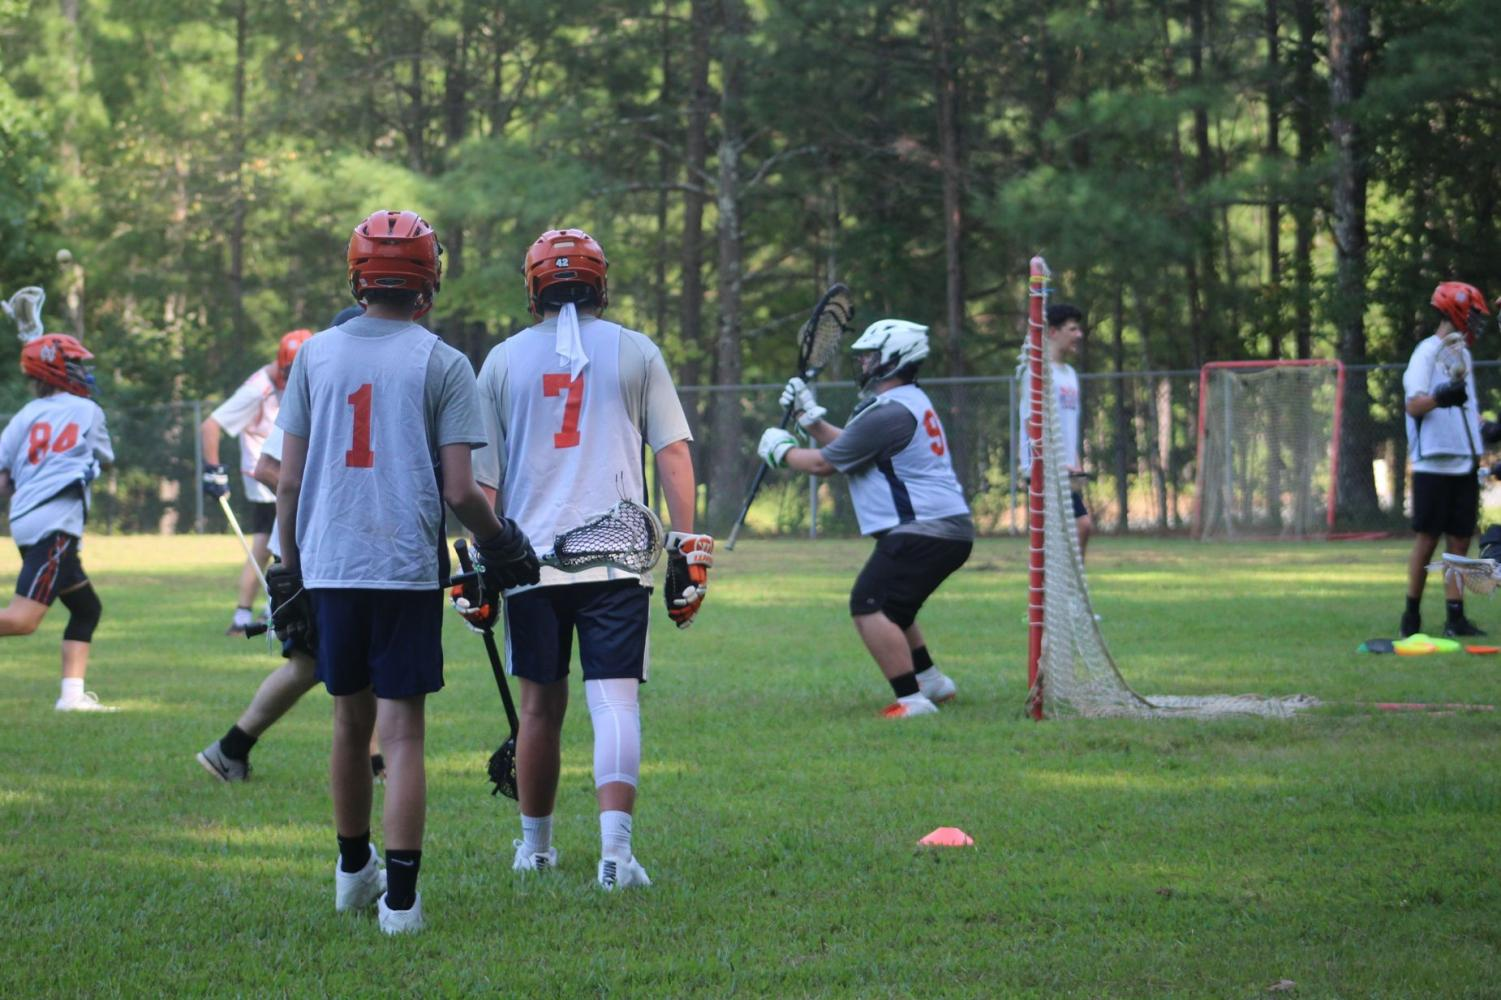 NC boys lacrosse will work on more ball movement drills at their next practice on Thursday, August 23. The players will split between varsity and junior varsity to practice more efficiently and focus on different skills for each group with varsity traveling to the NC upper grass field and junior varsity staying on their usual practice field—the Awtrey middle school field.